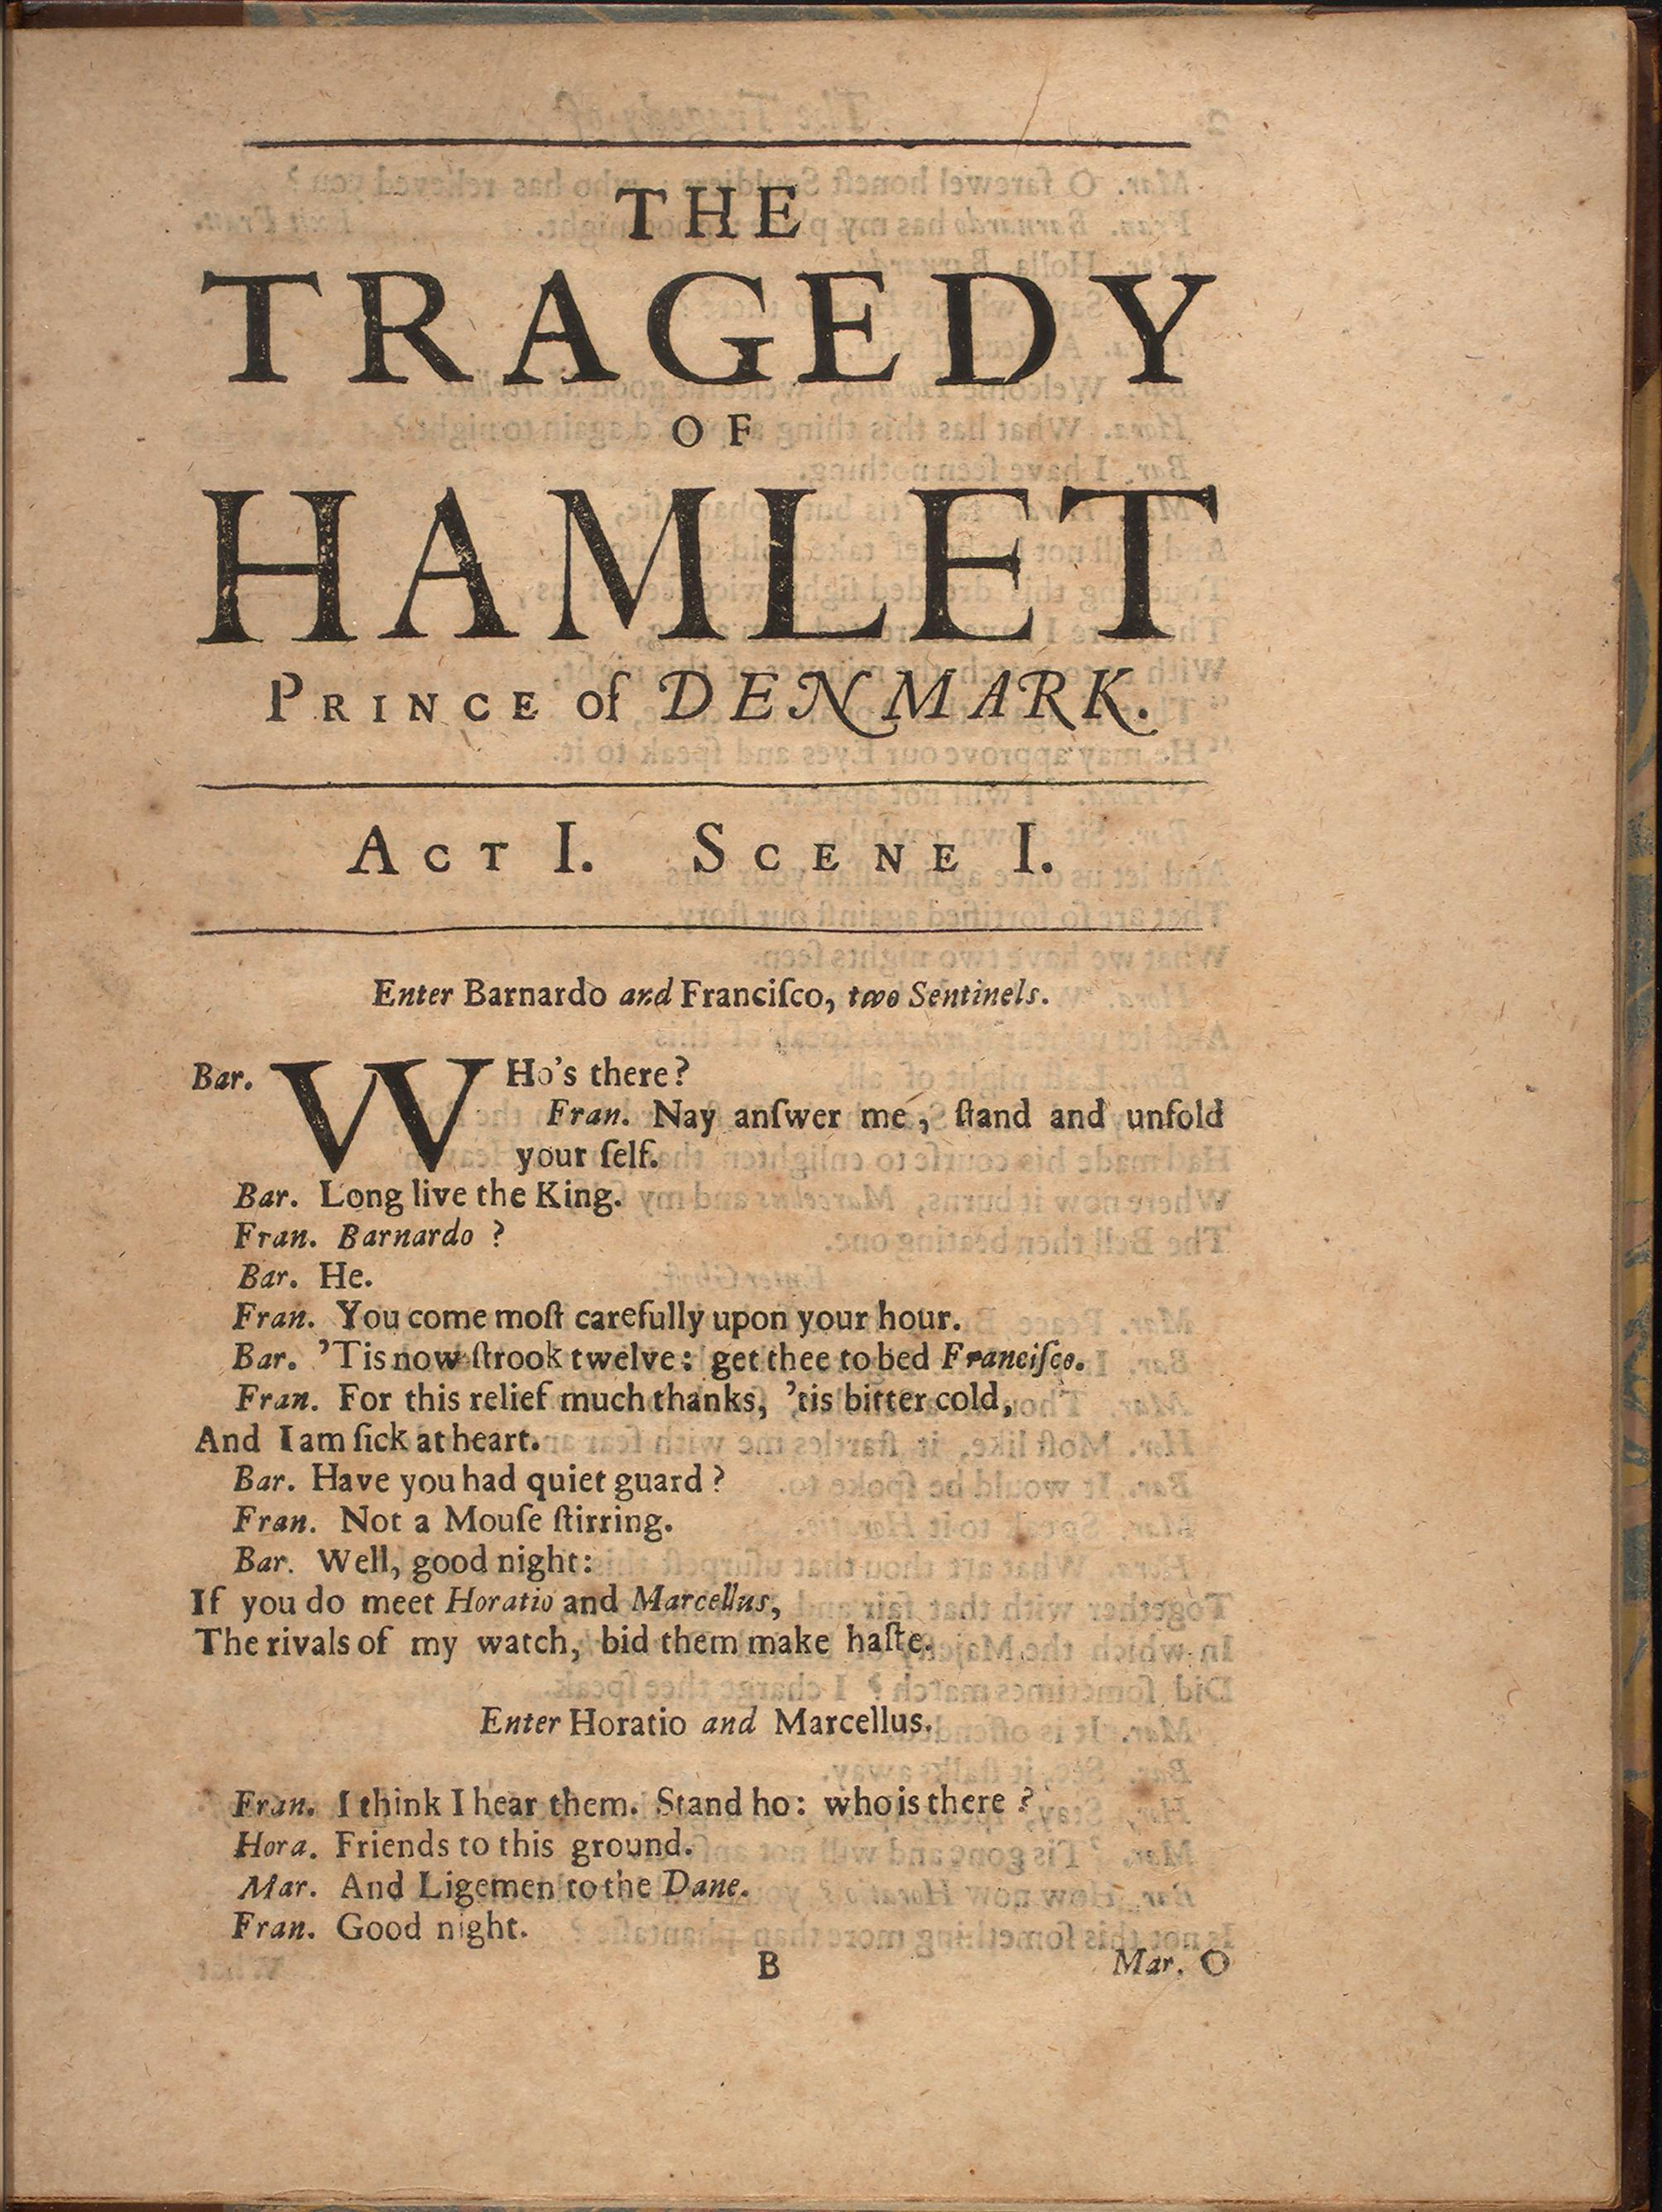 an analysis of the ghost of king hamlet in hamlet a play by william shakespeare William shakespeare's famous work, hamlet, prince of denmark, is a tragedy set across five acts and was written about 1600 more than just a revenge play, hamlet deals with questions about life and existence, sanity, love, death, and betrayal it's one of the most quoted works of literature in the .